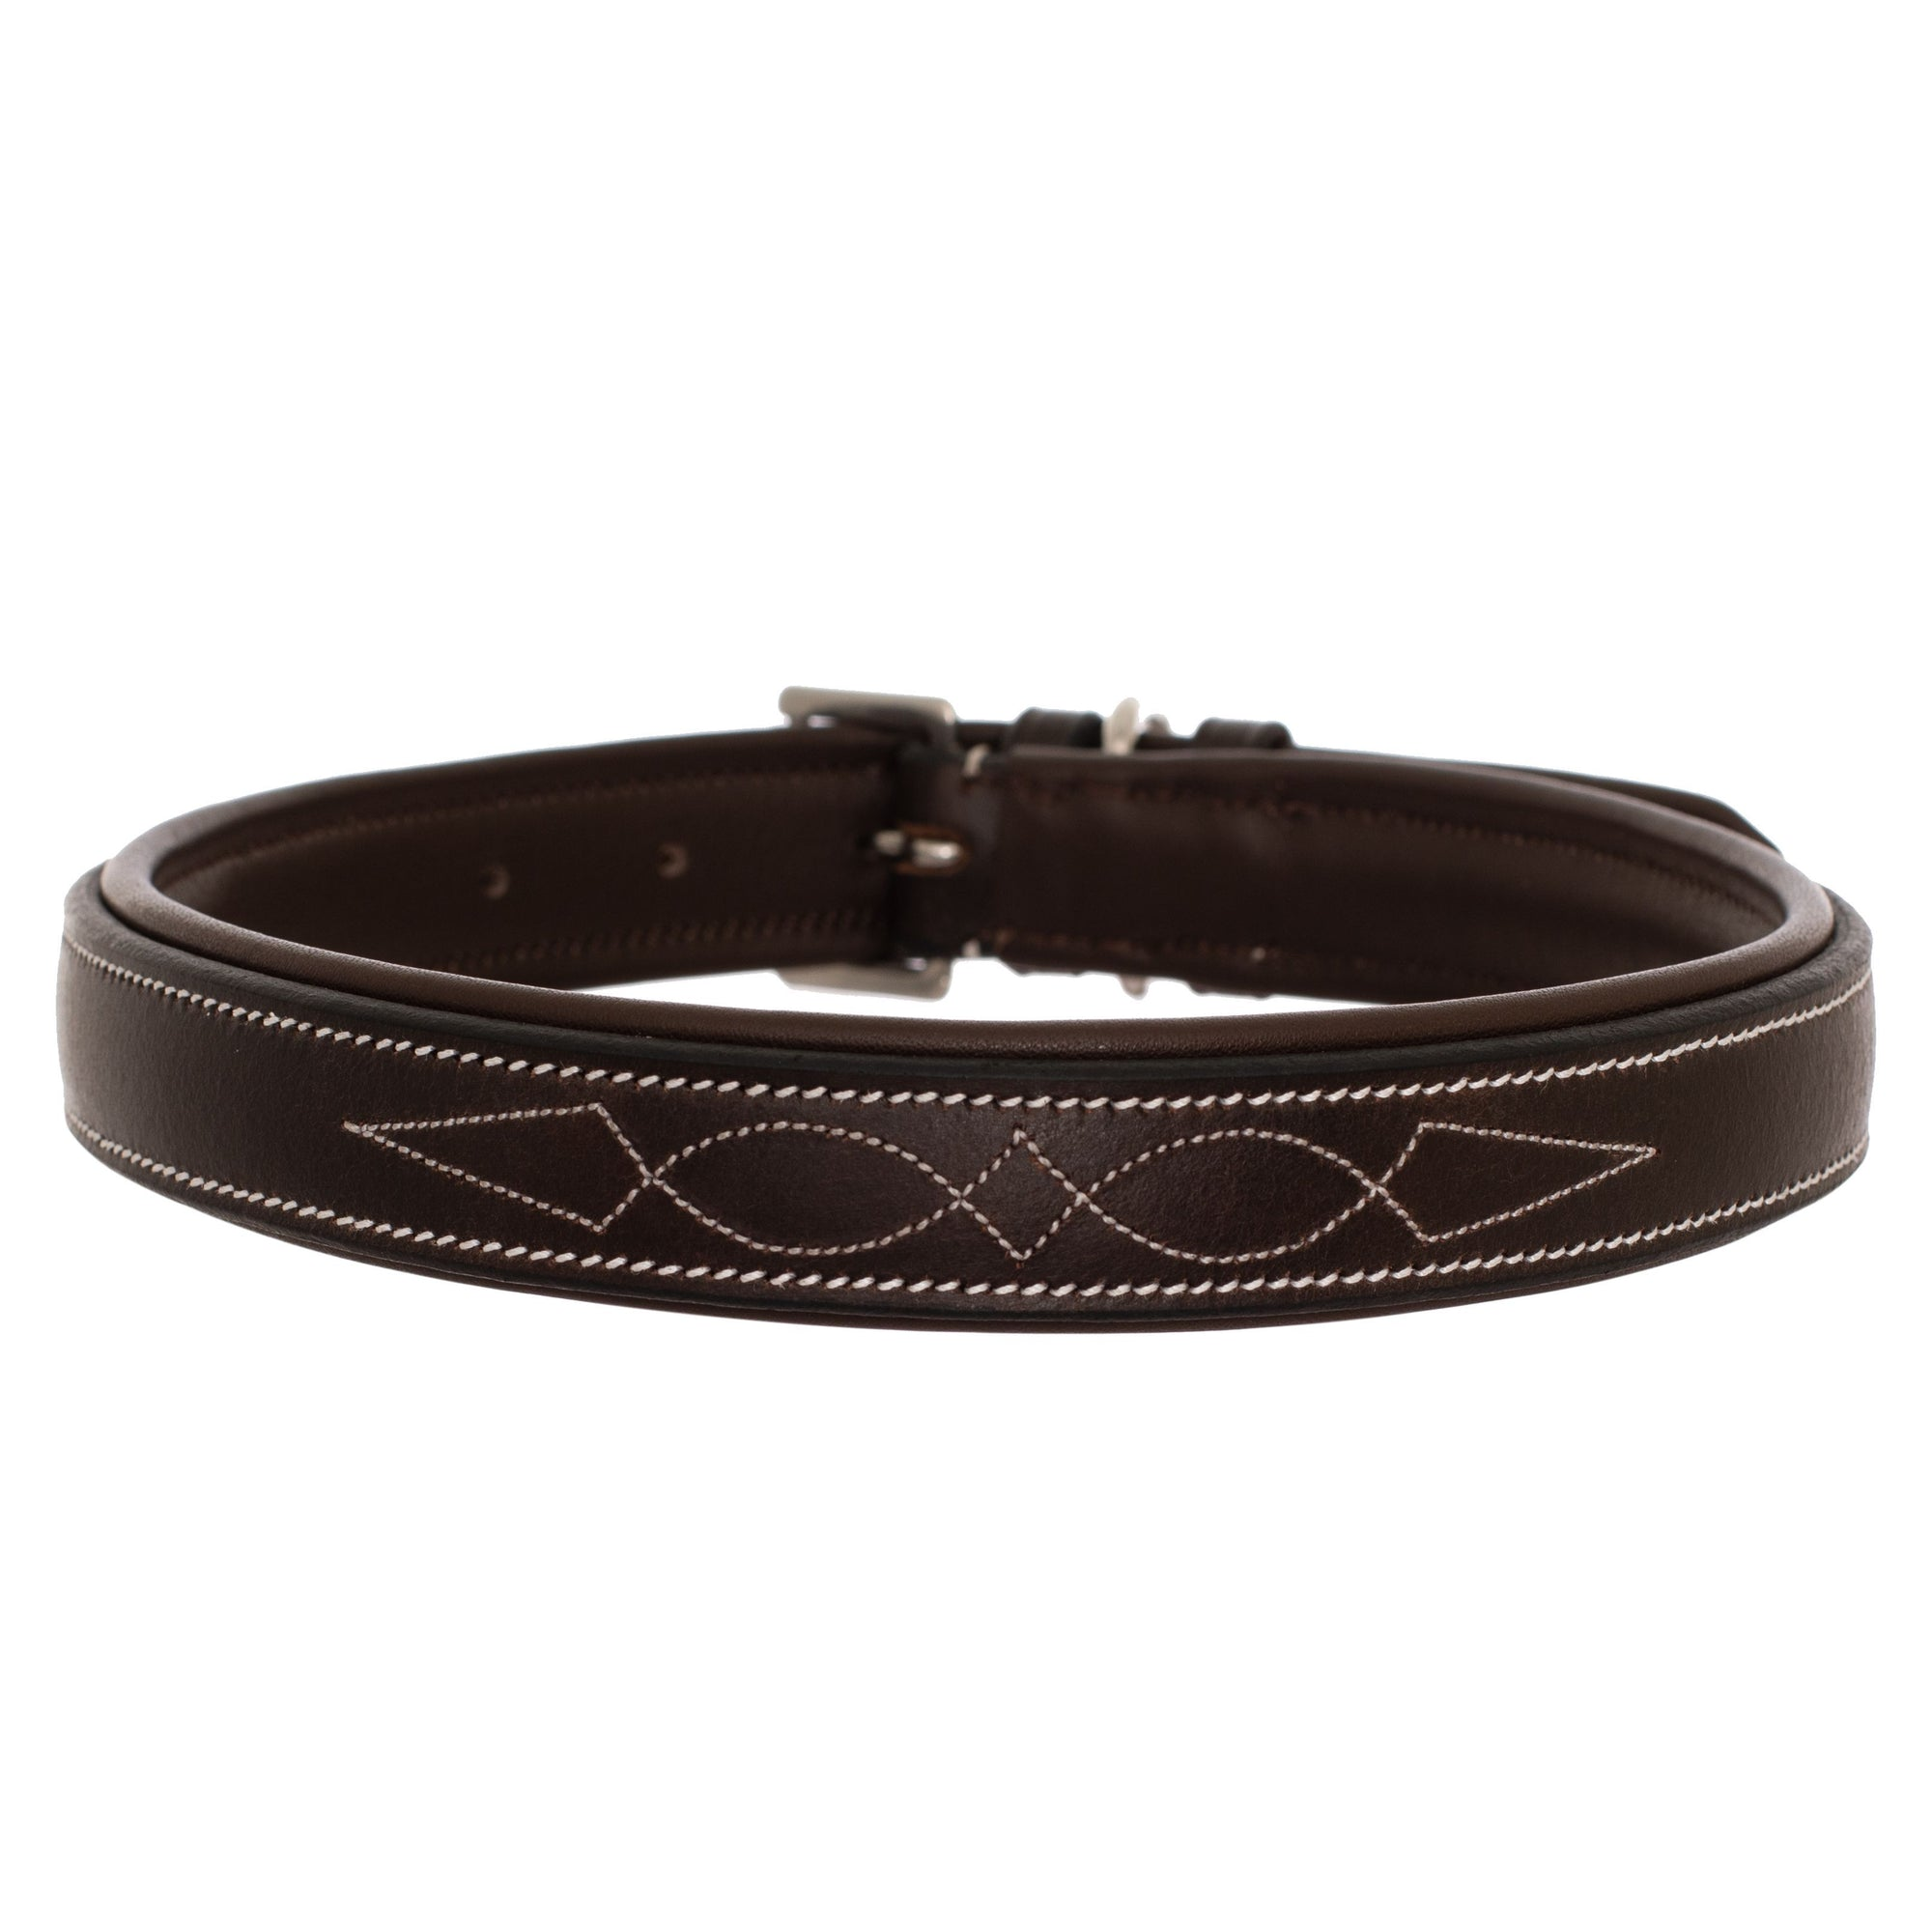 ExionPro Fancy Stitched Padded Leather Dog Collar - Havana Padding-Bridles & Reins